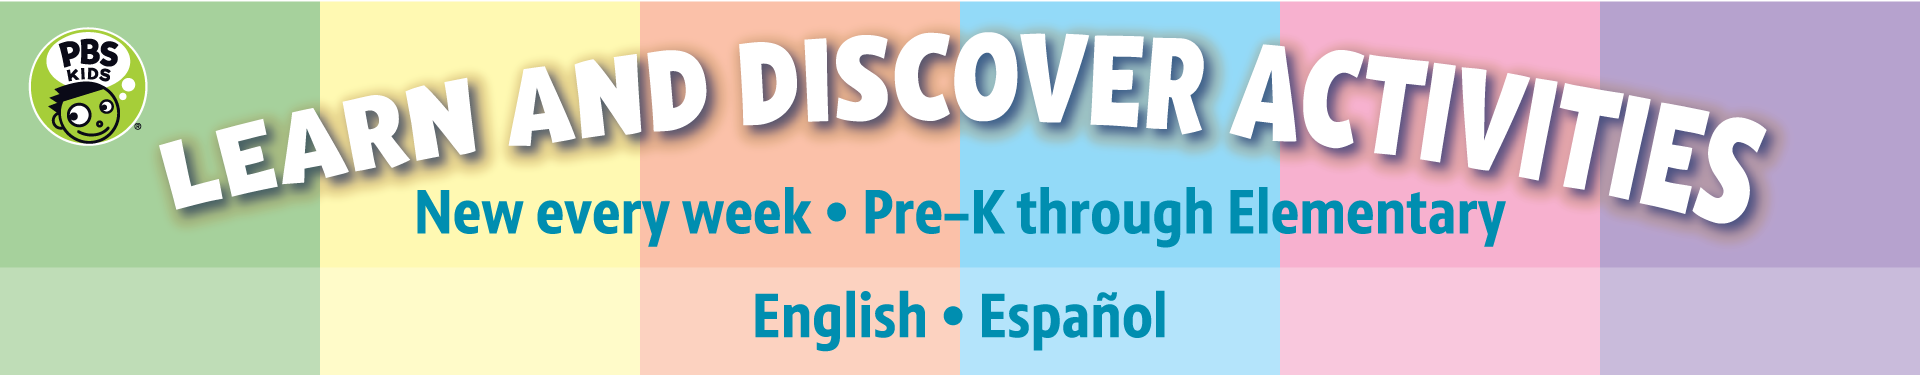 Learn and Discover Activities | New every week • Pre-K through Elementary